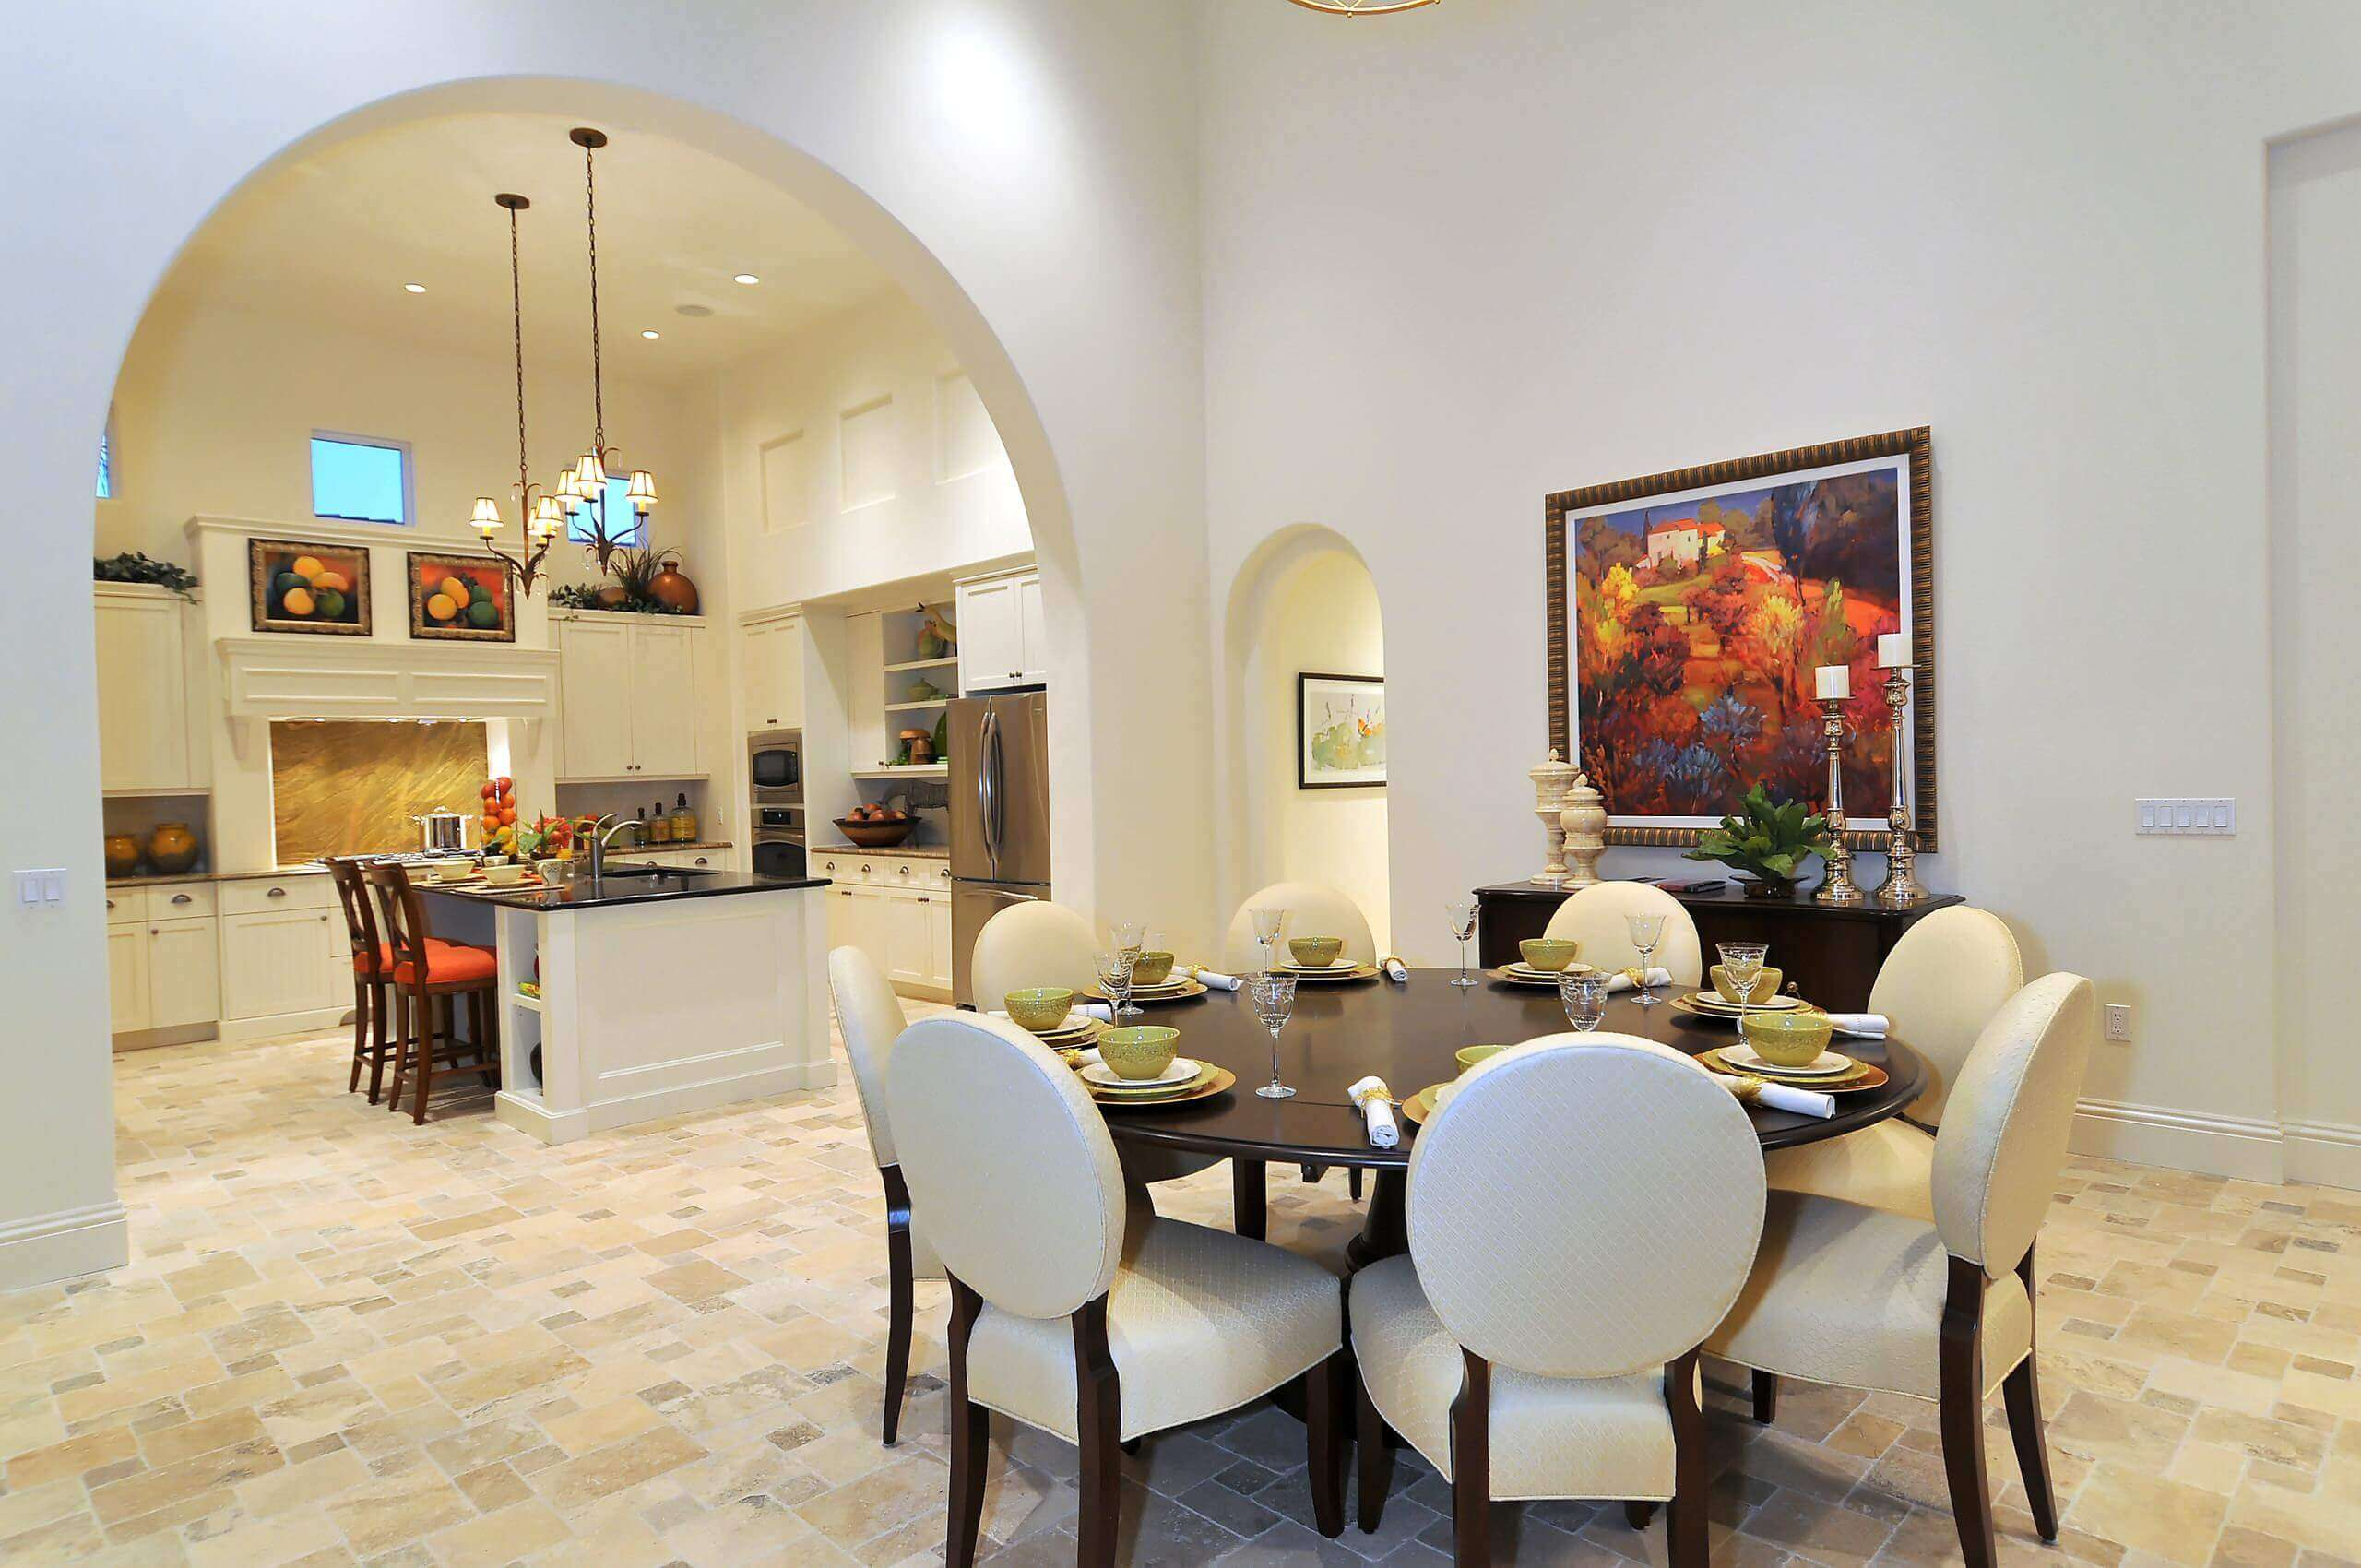 As one of the important furniture piece in this stunning kitchen, the contemporary round kitchen table and chairs properly fill the space, enhance comfort while reflecting the entire home personality